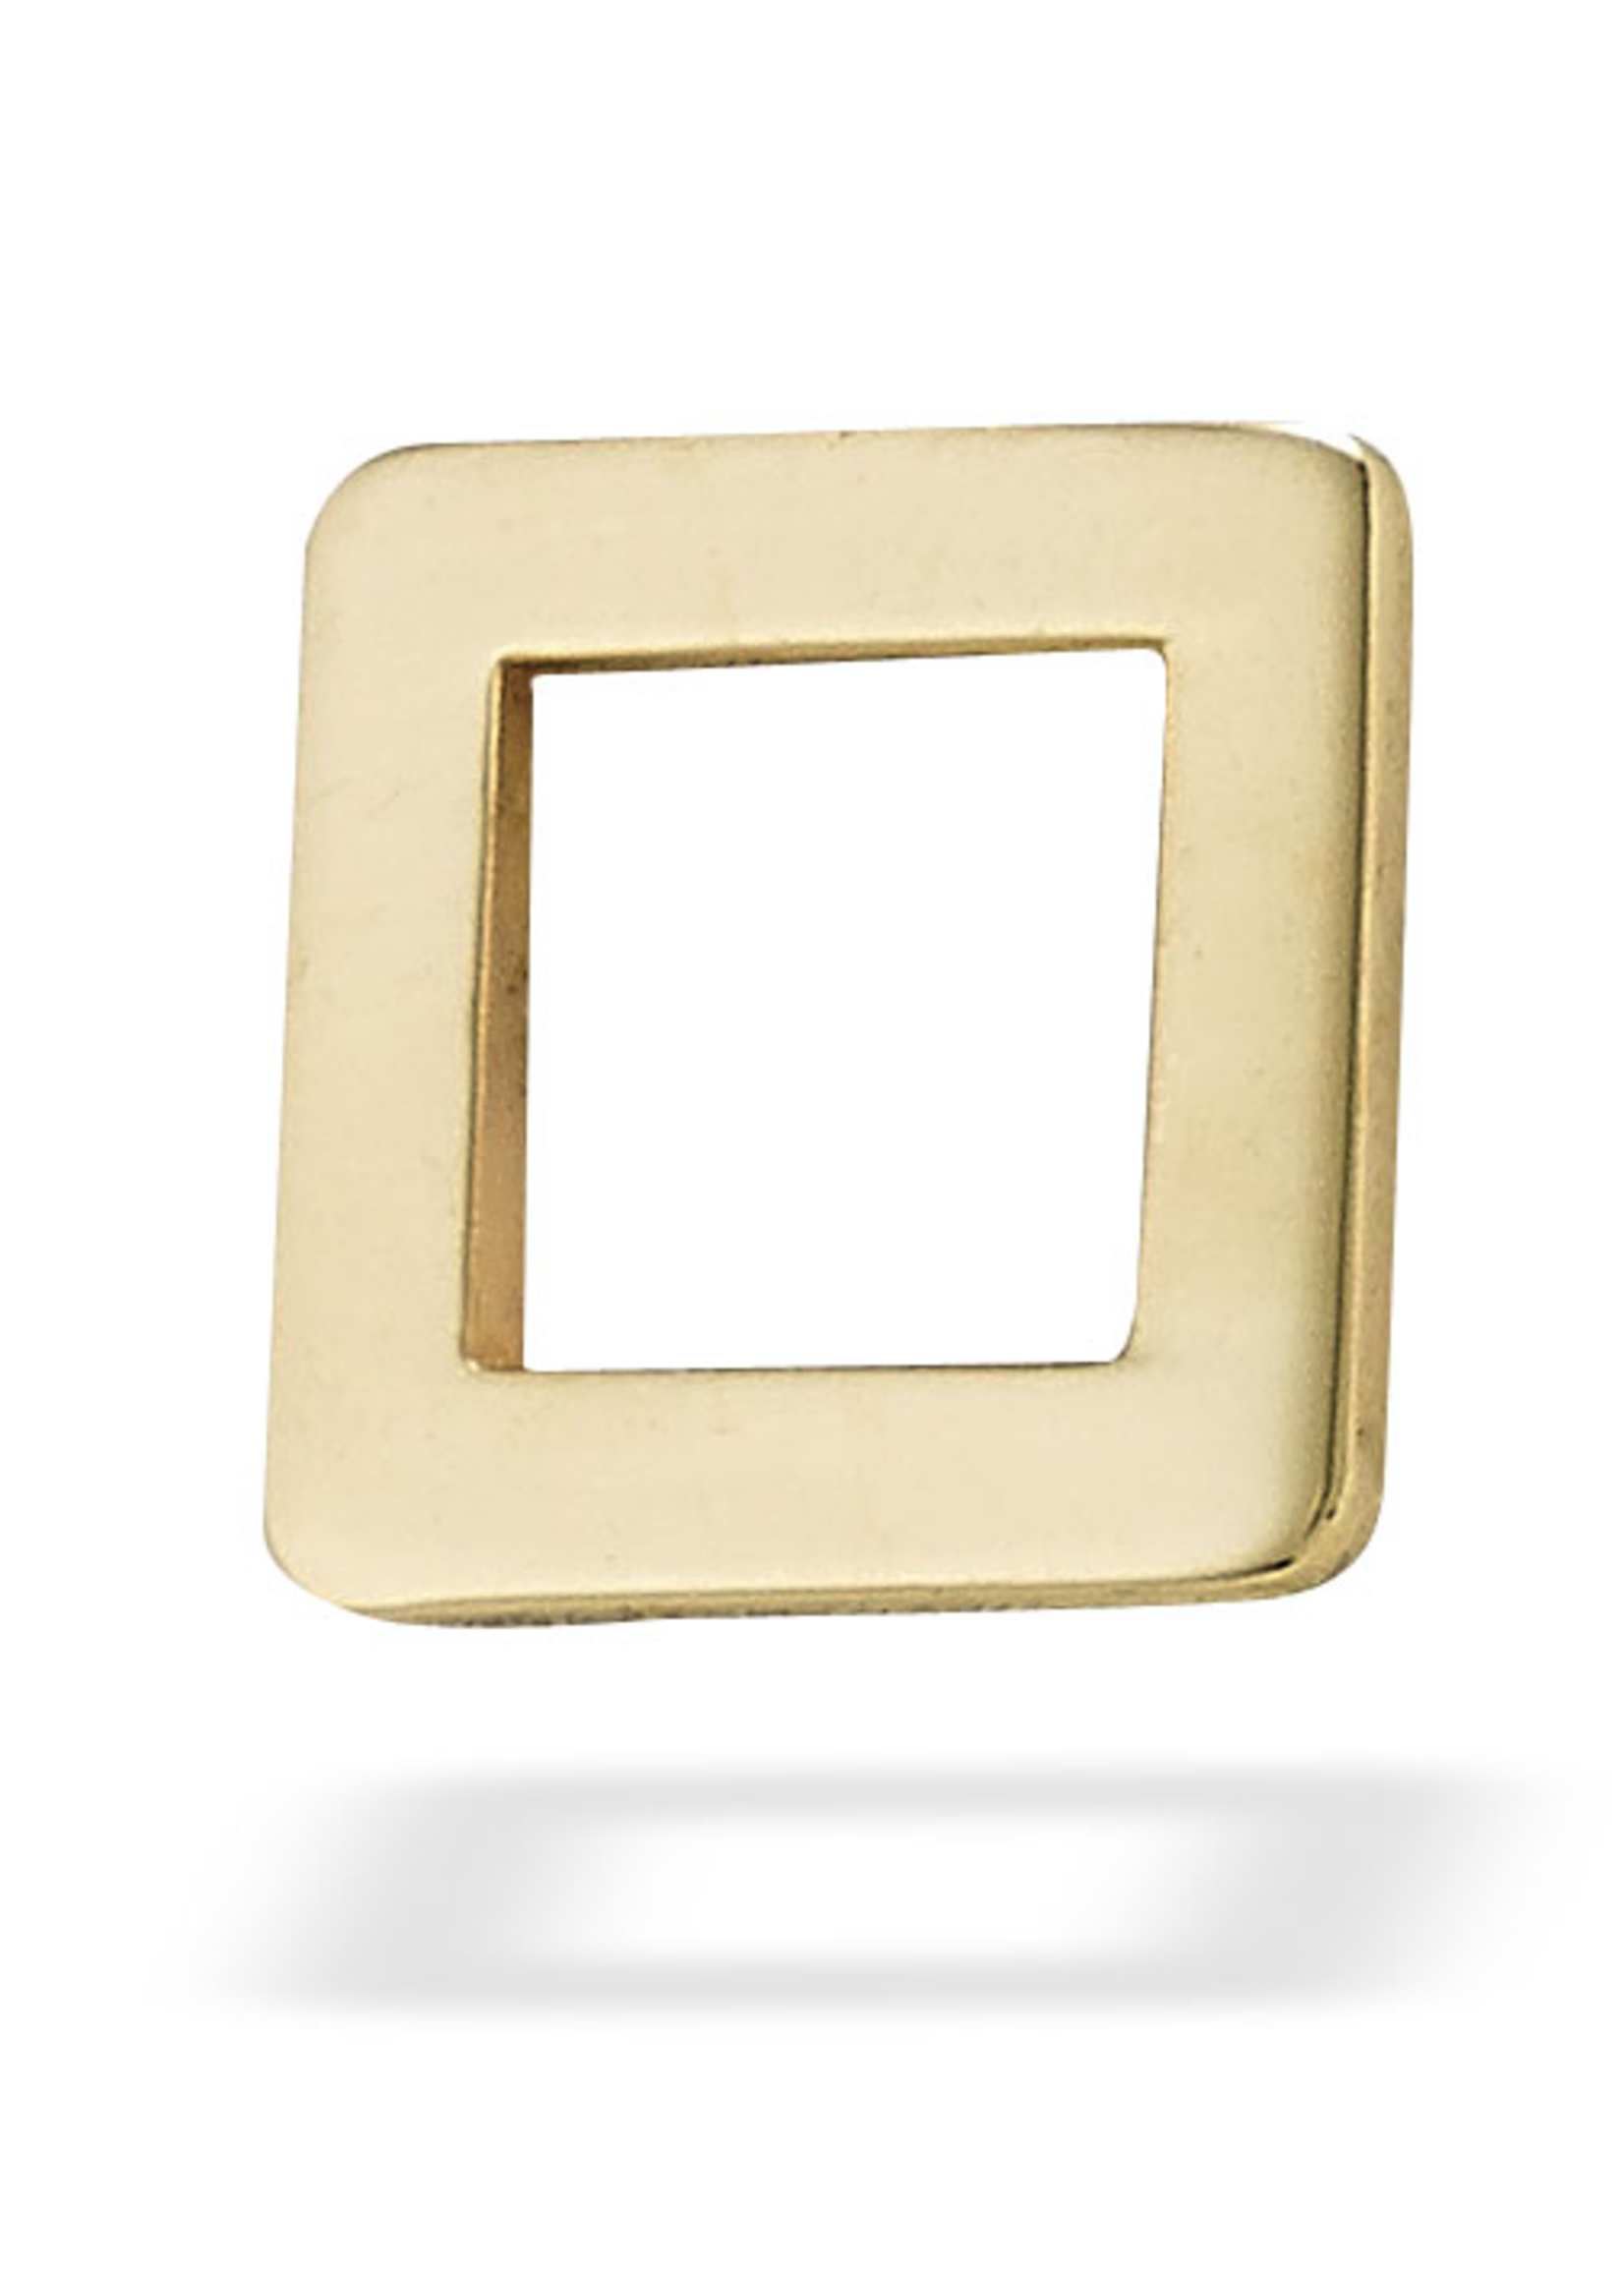 14k YG Open Square (5mm)